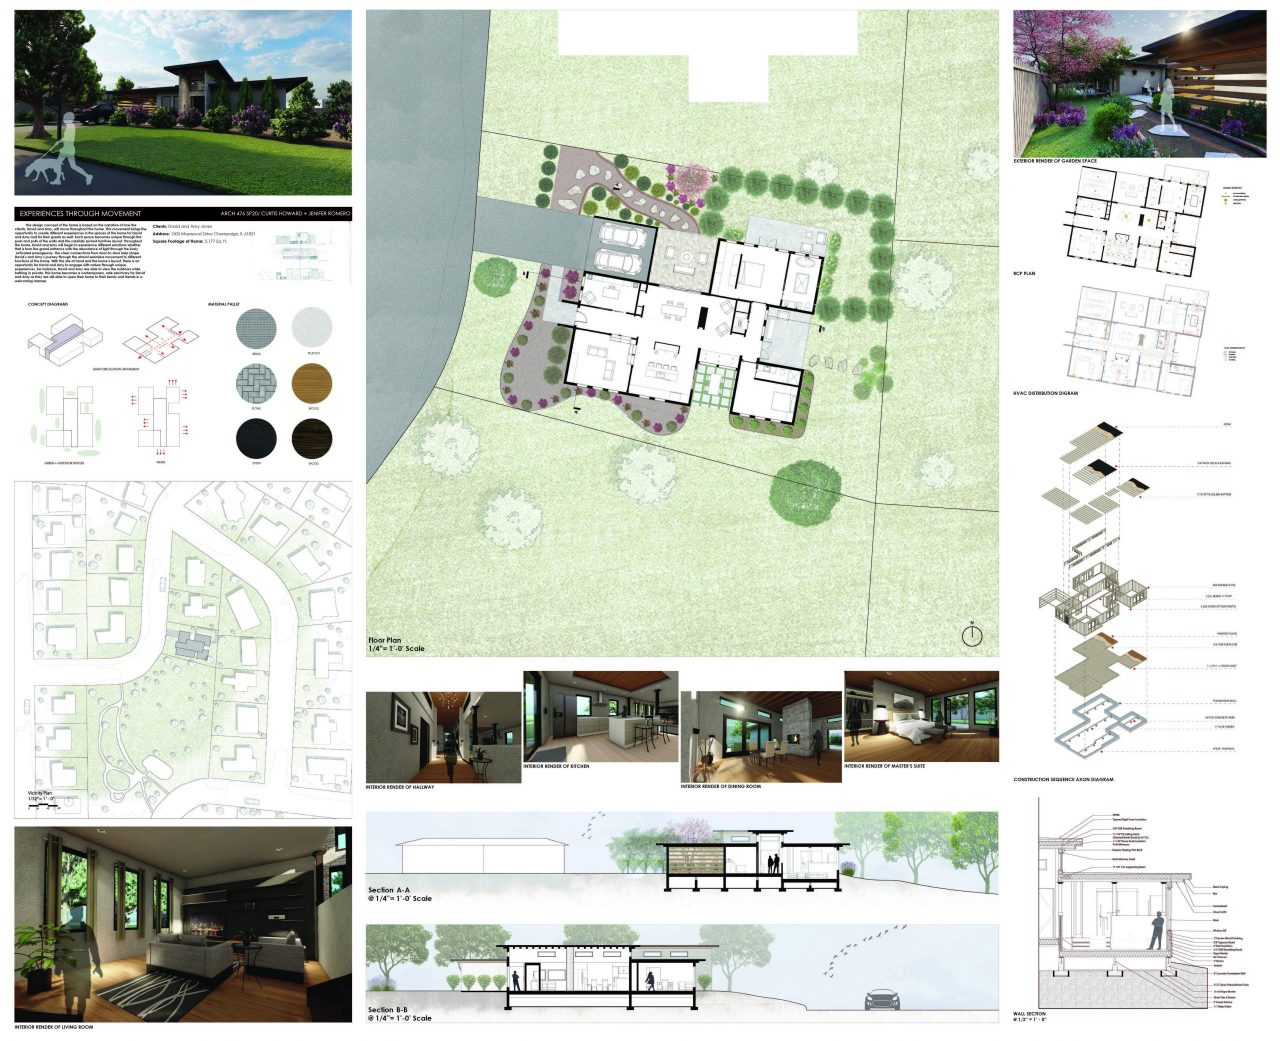 Board of residential design by Curtis Howard